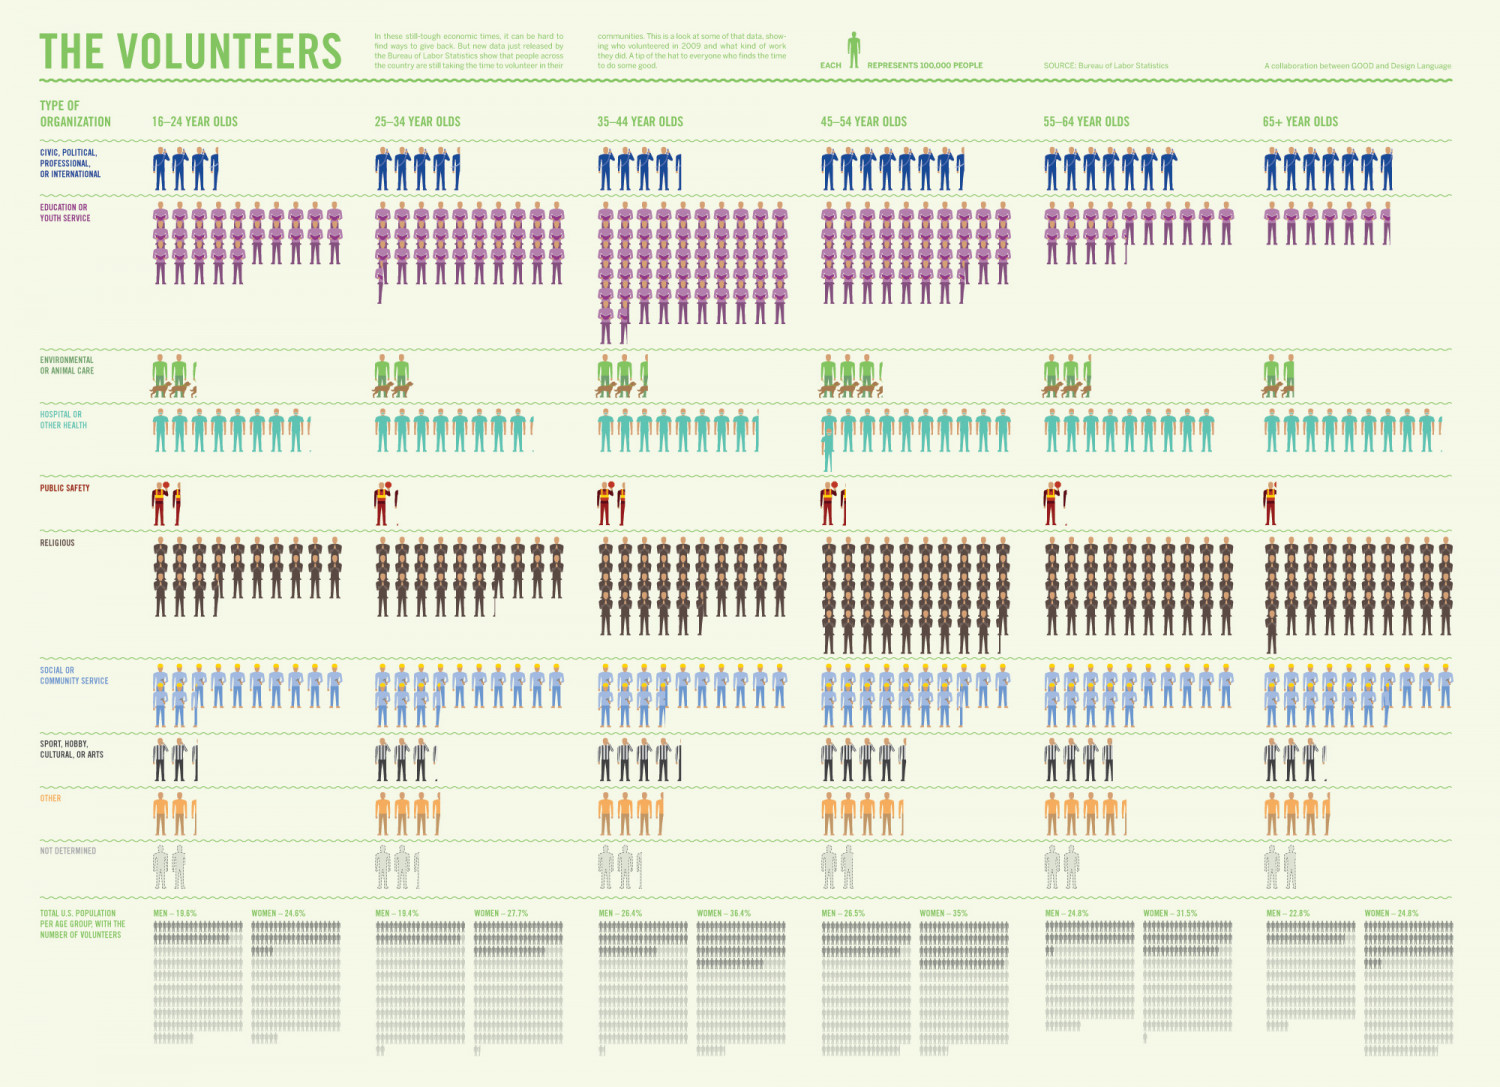 The Volunteers Infographic